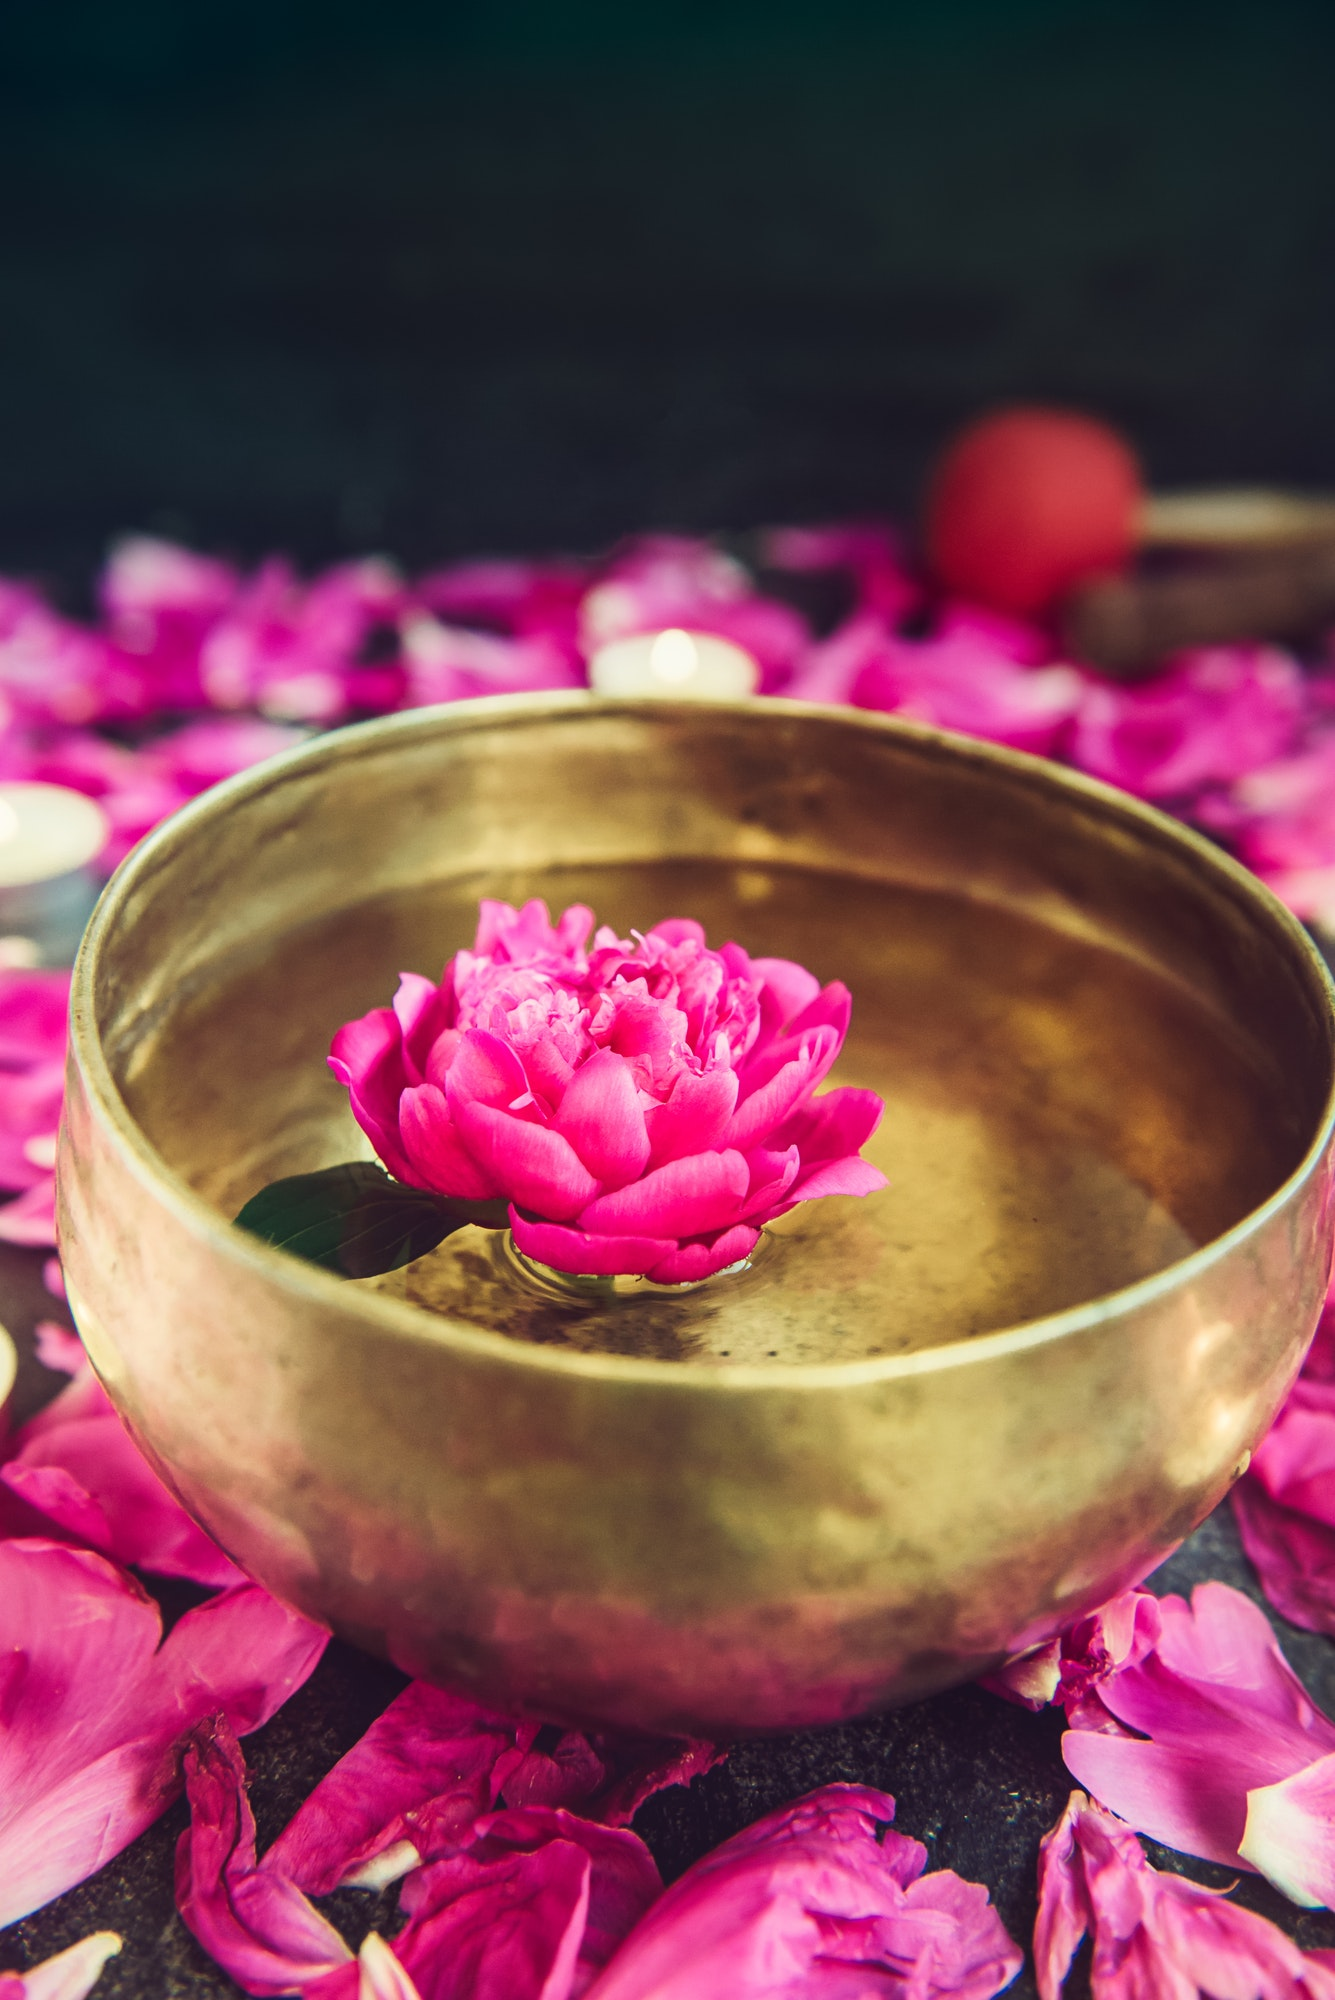 Tibetan singing bowl with floating inside in water purple peony flower. Burning candles, special sti